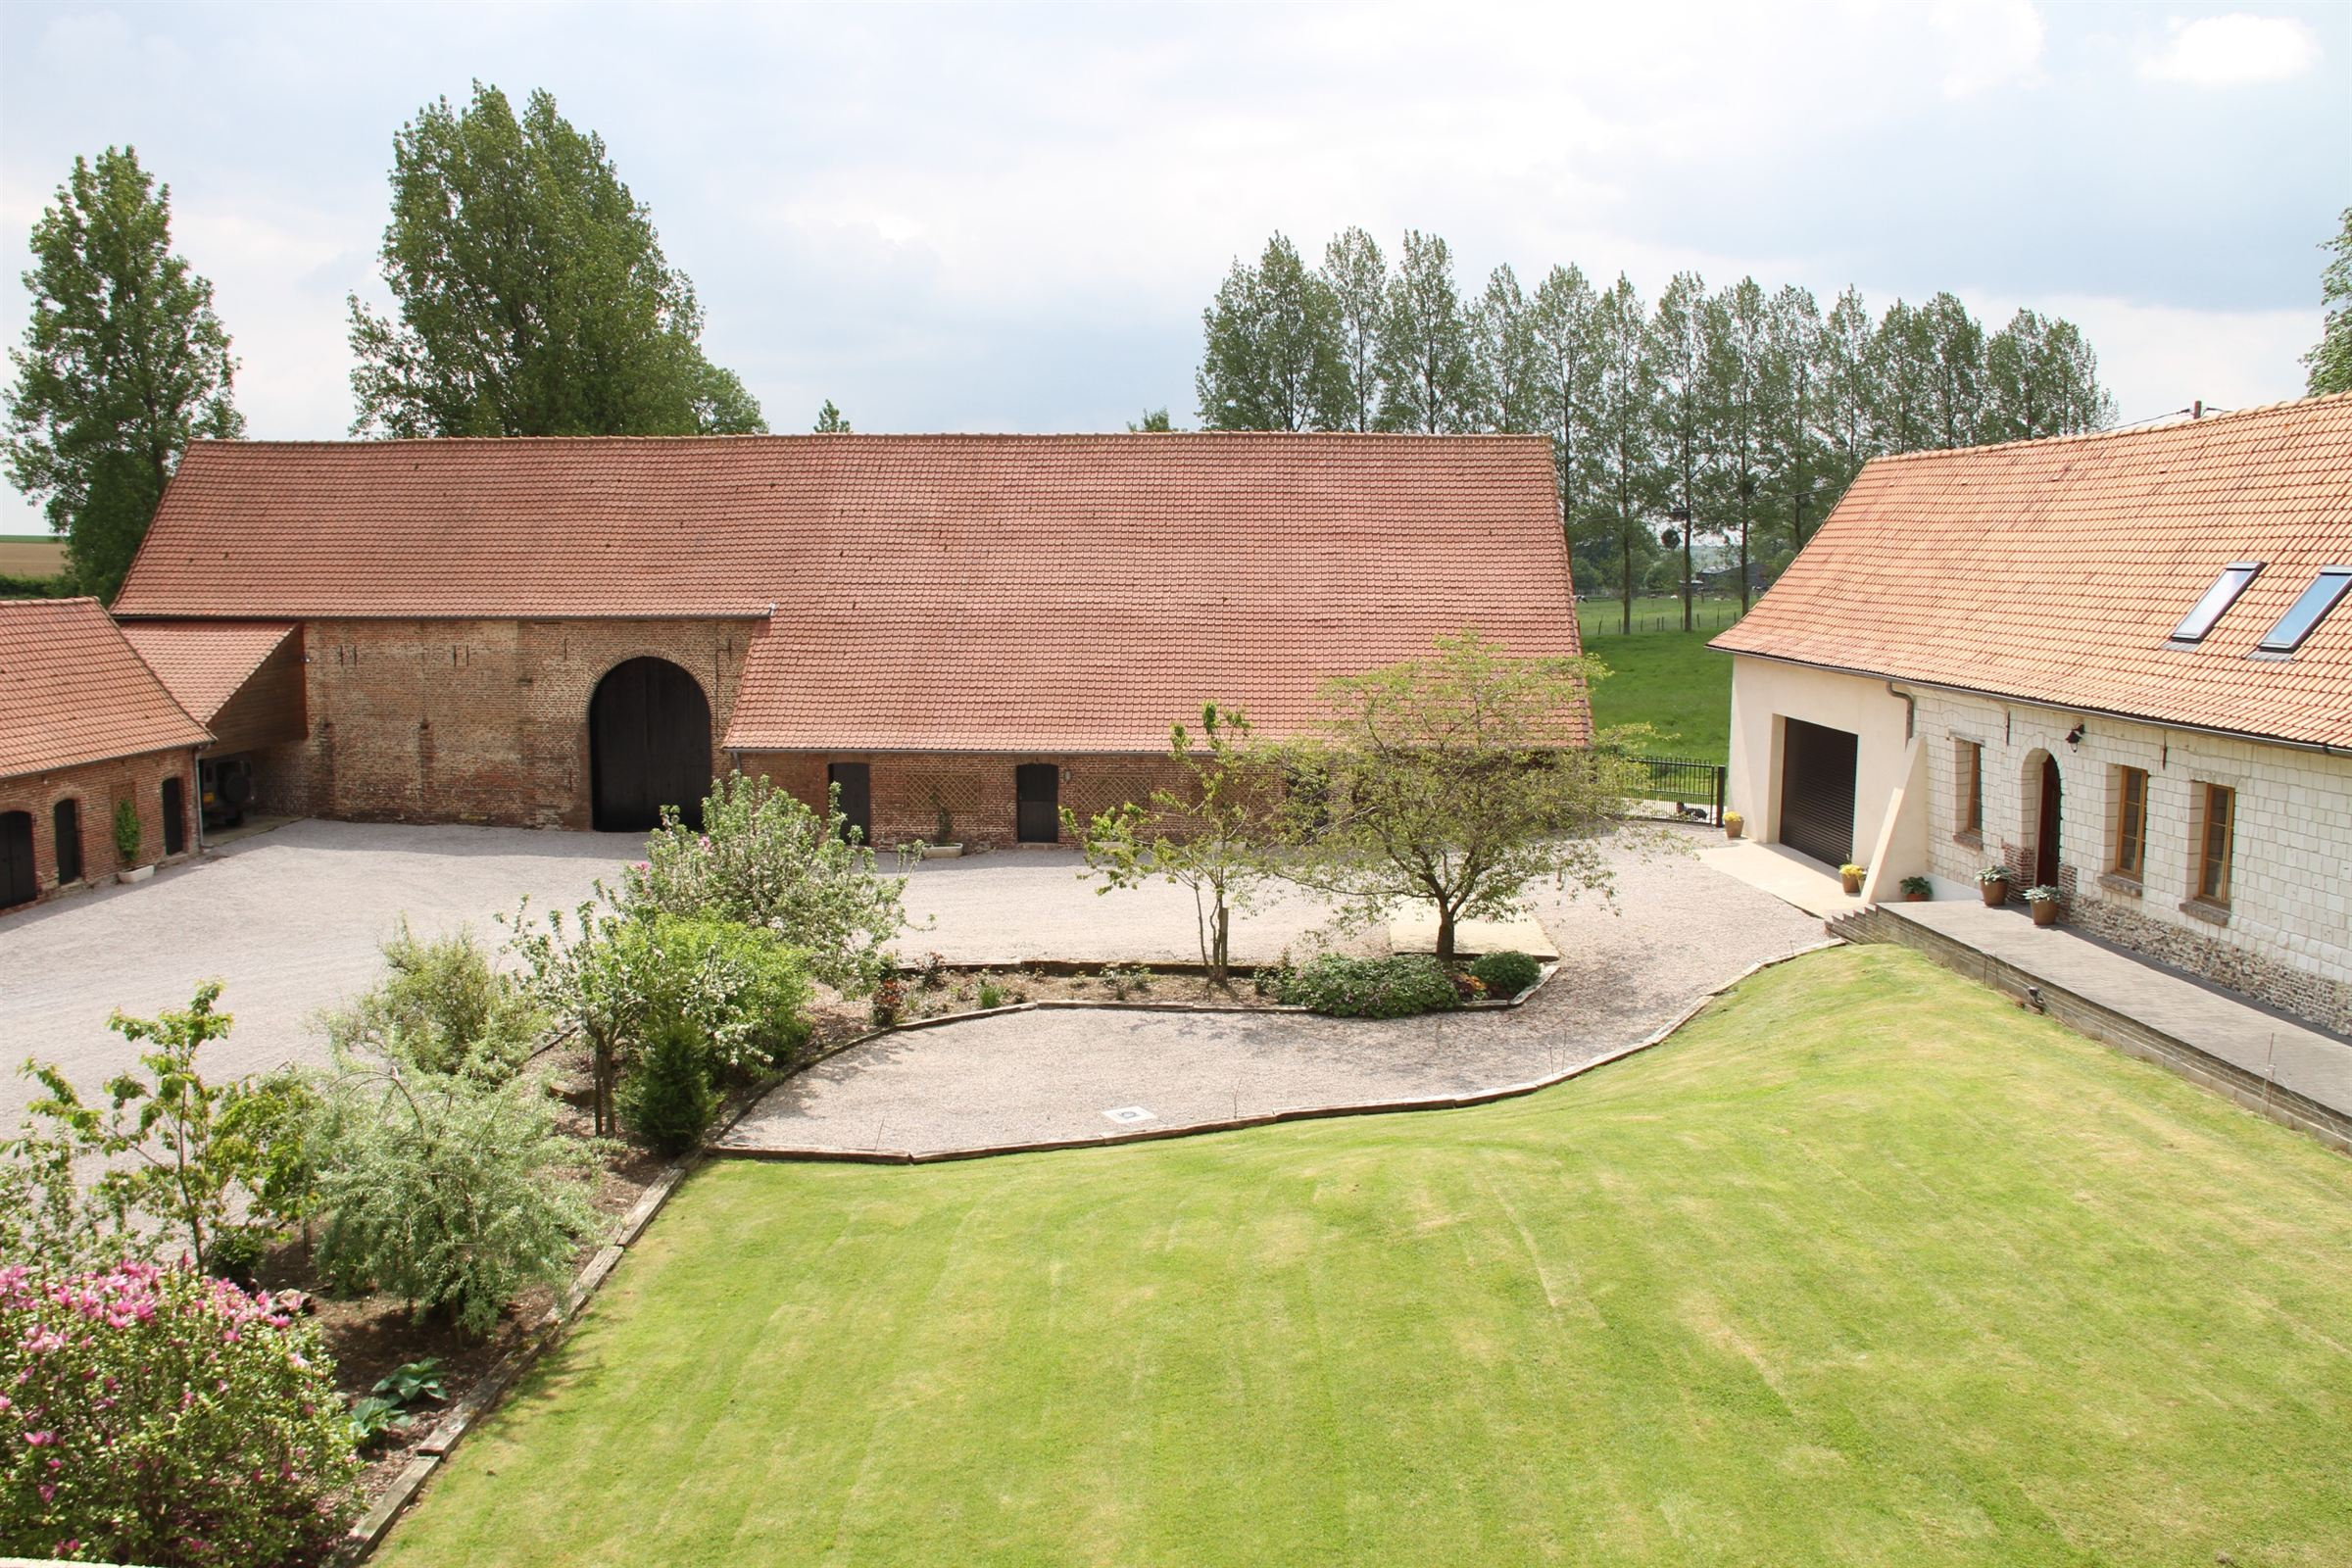 Property For Sale at CAMPAGNE D'HESDIN, Grande Ferme au carré rénovée sur 2,3 Ha